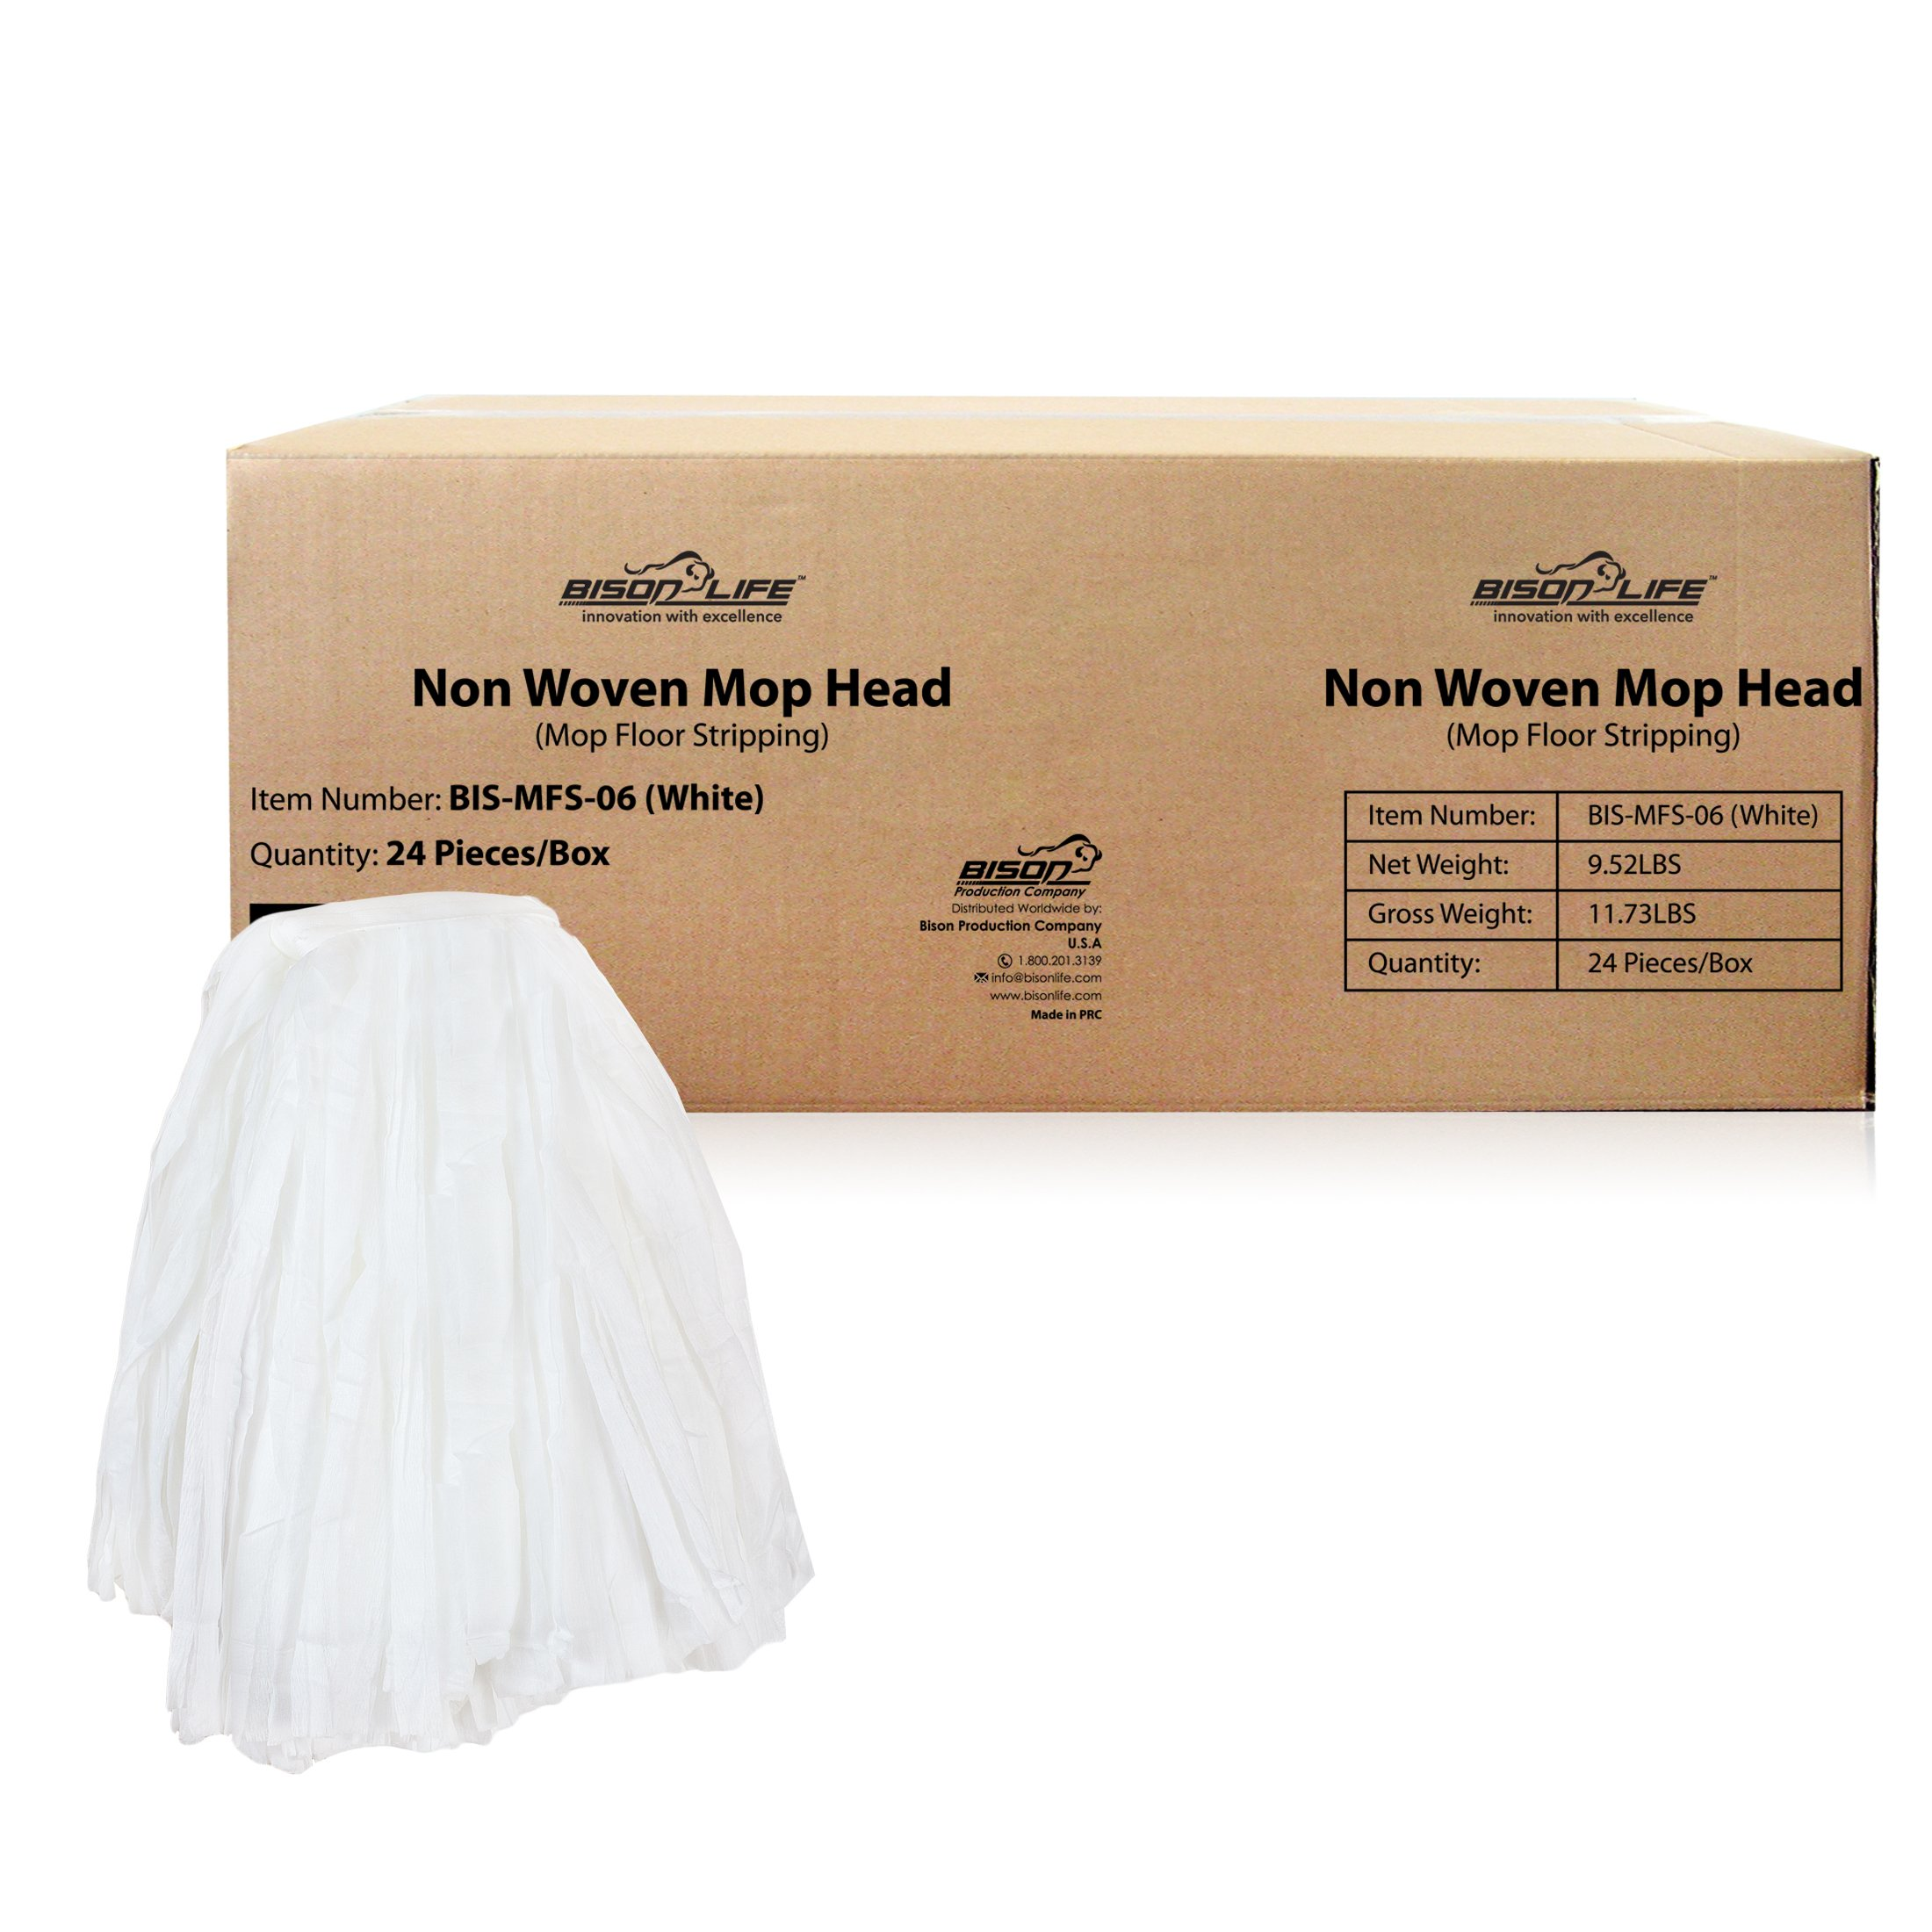 KLEEN HANDLER Disposable Industrial Mop Head Replacement, Non-Woven Cut End Floor Cleaning Wet Mop Head Refill (Case of 24) by KLEEN HANDLER